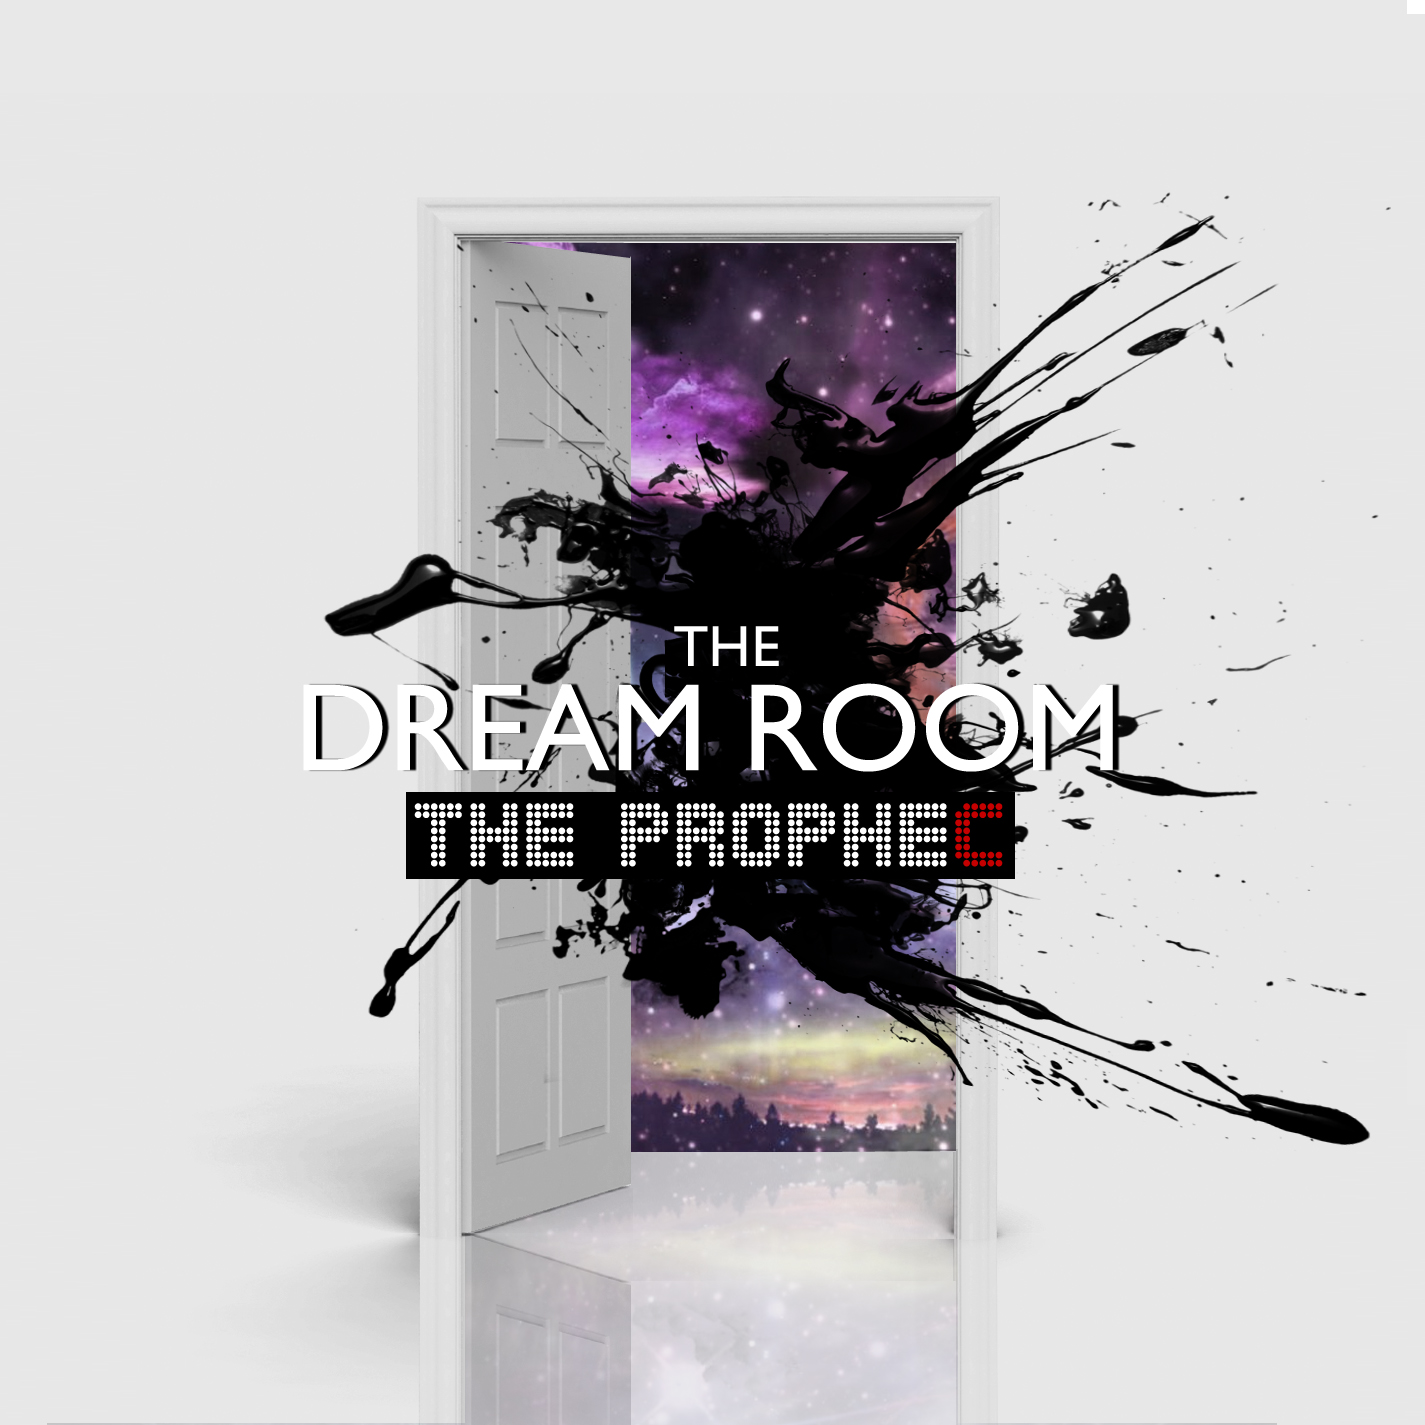 The Dream Room By The PropheC (ft. Mickey Singh, Bikram, singh, Rakstar & Vilonder Singh) Mp3 Songs